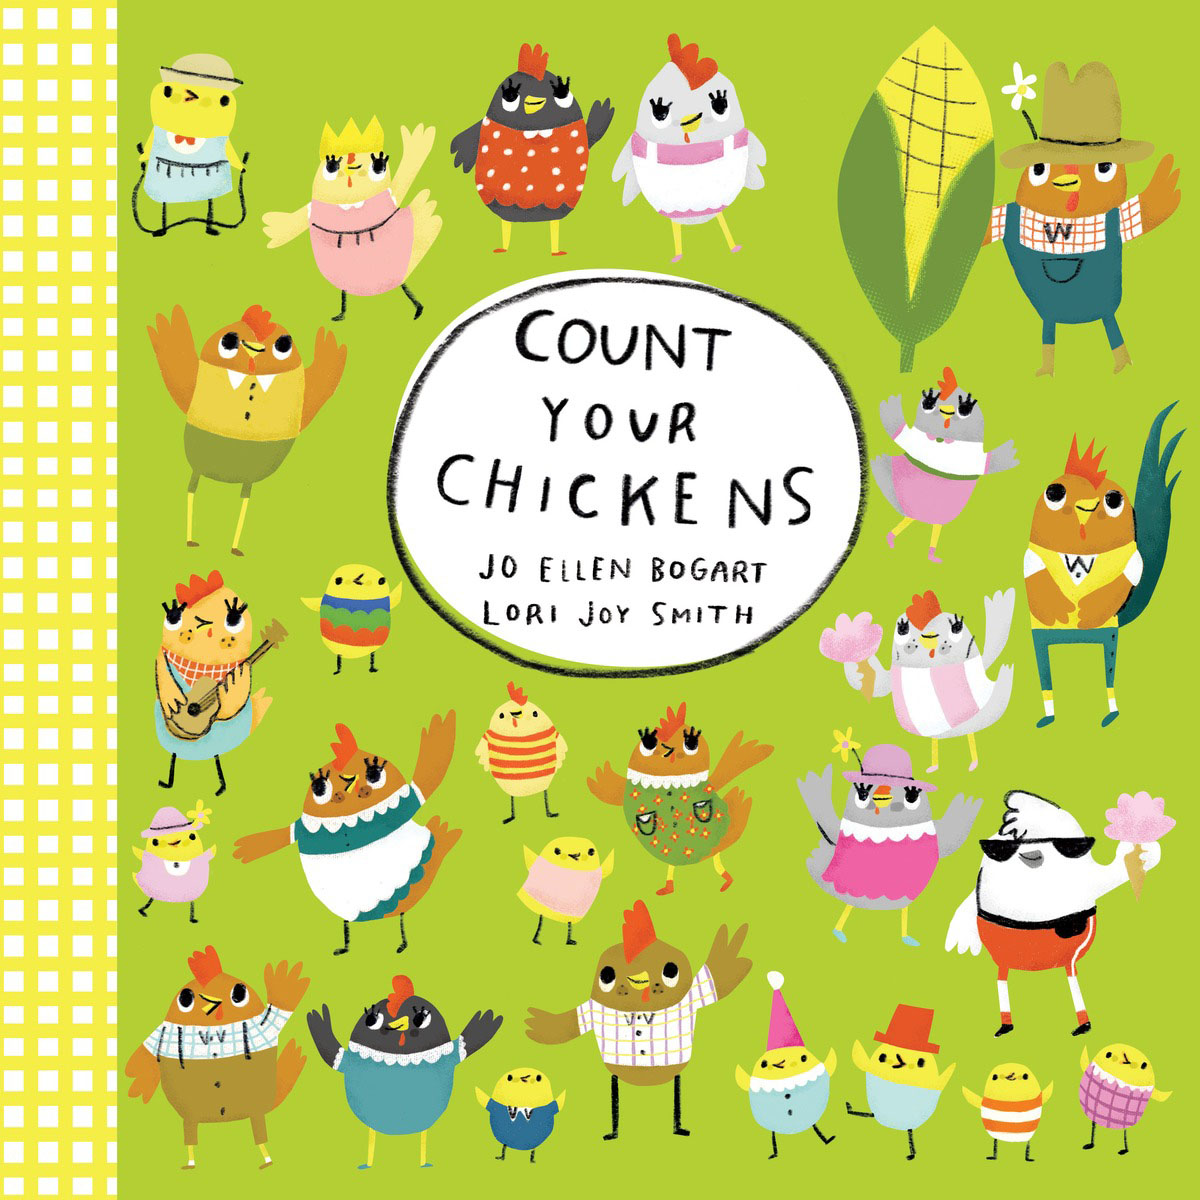 Count Your Chickens love among the chickens